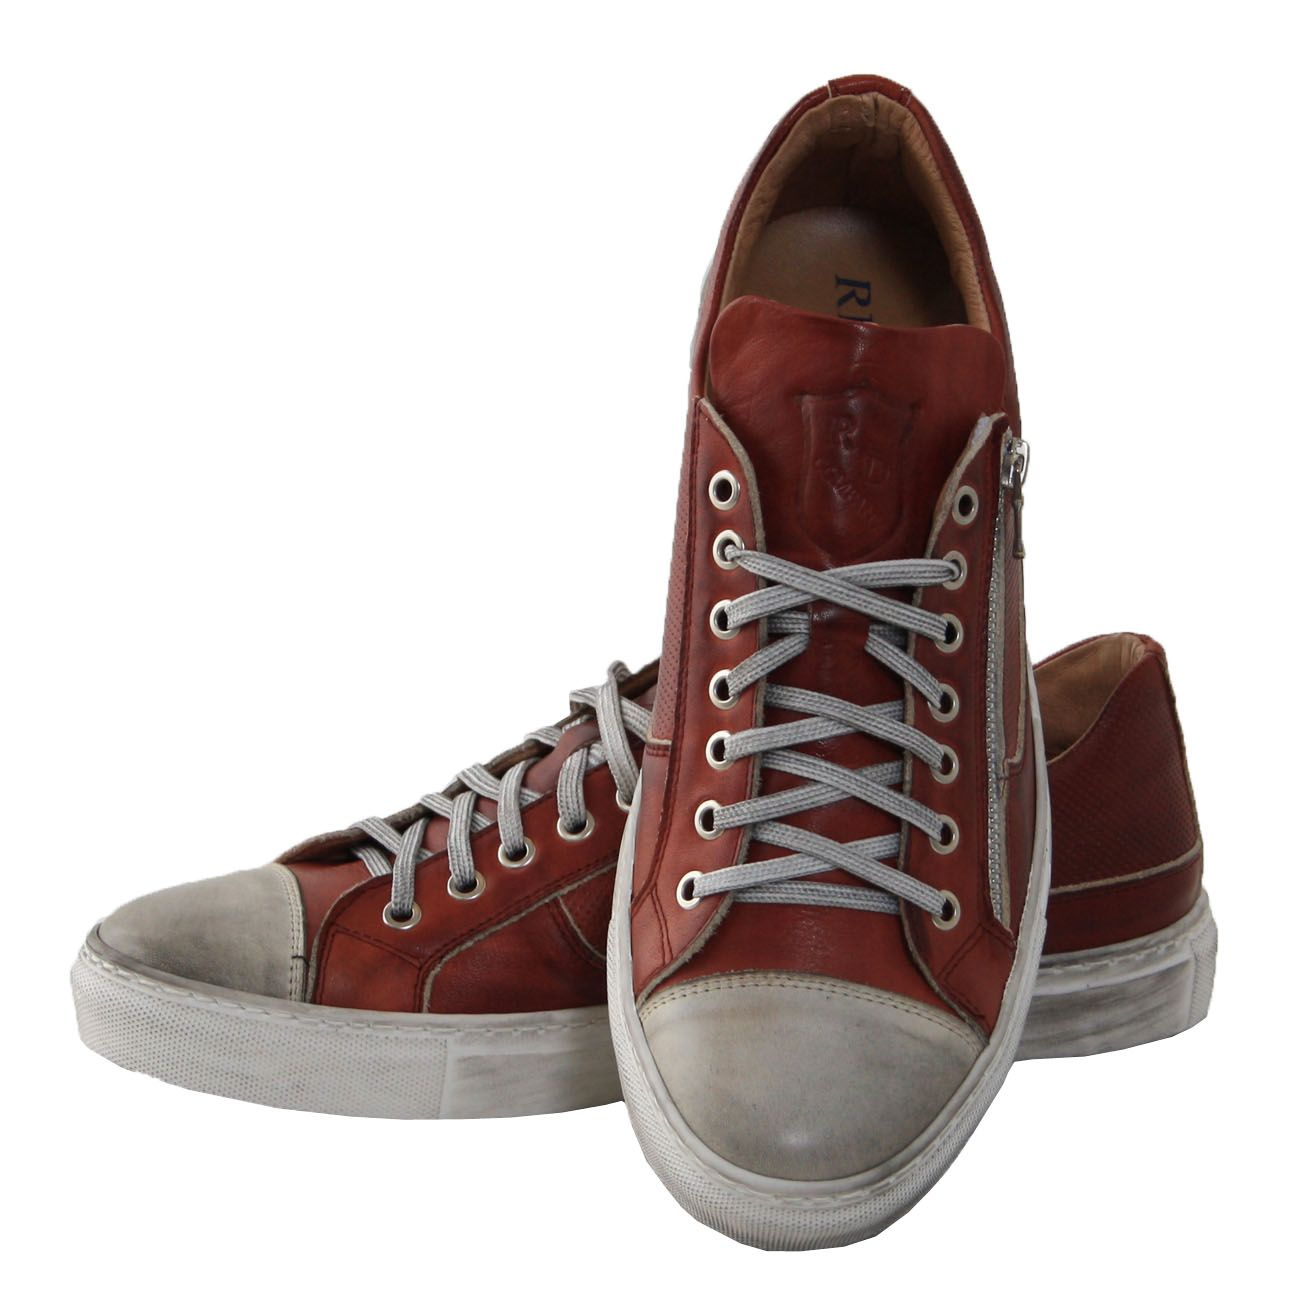 Sneakers RD COMPANY - LV9049